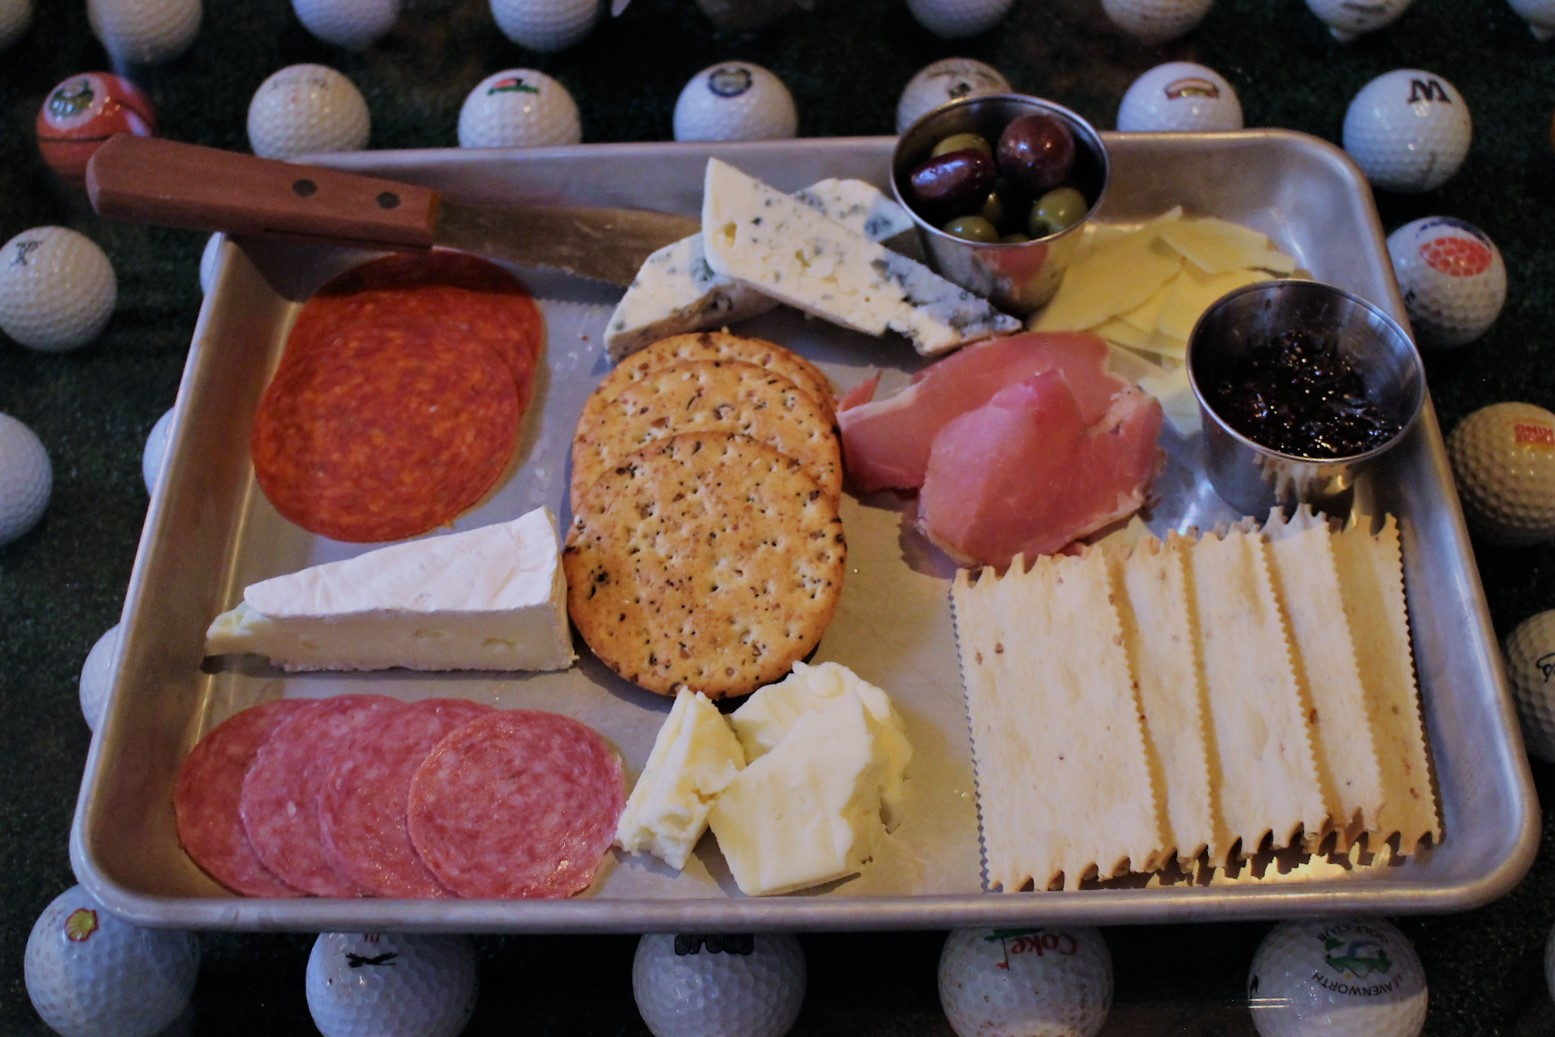 Charcuterie Platter is a good choice for everyone to nibble.